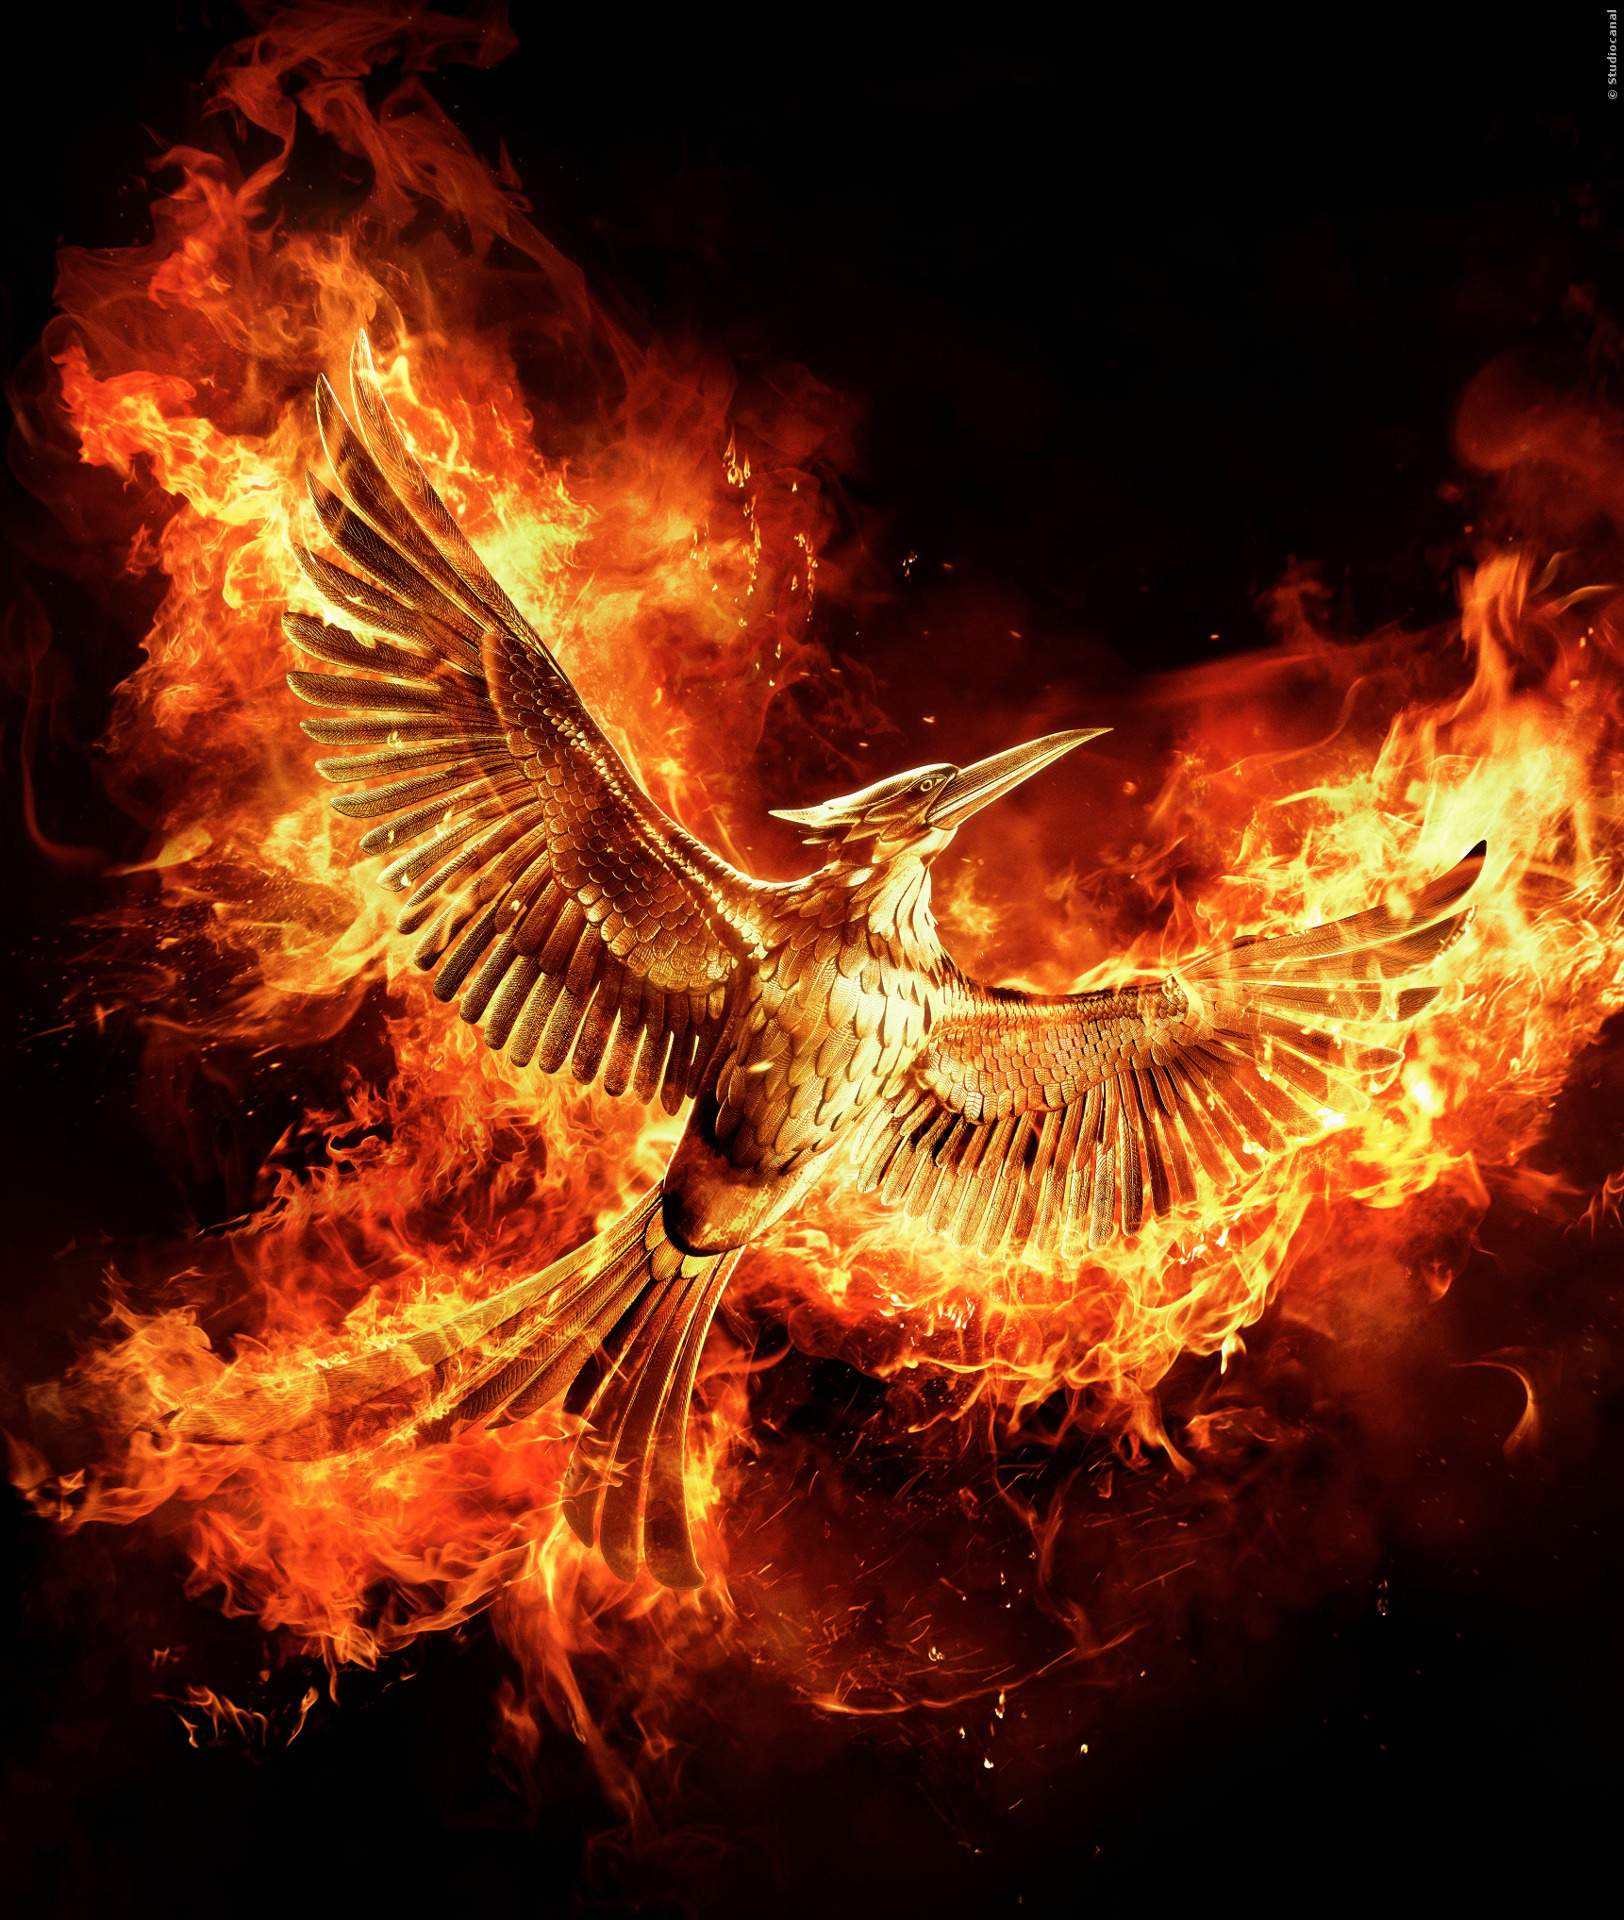 Die tribute von panem 4 trailer mockingjay teil 2 trailerseite film tv for Die tribute von panem 2